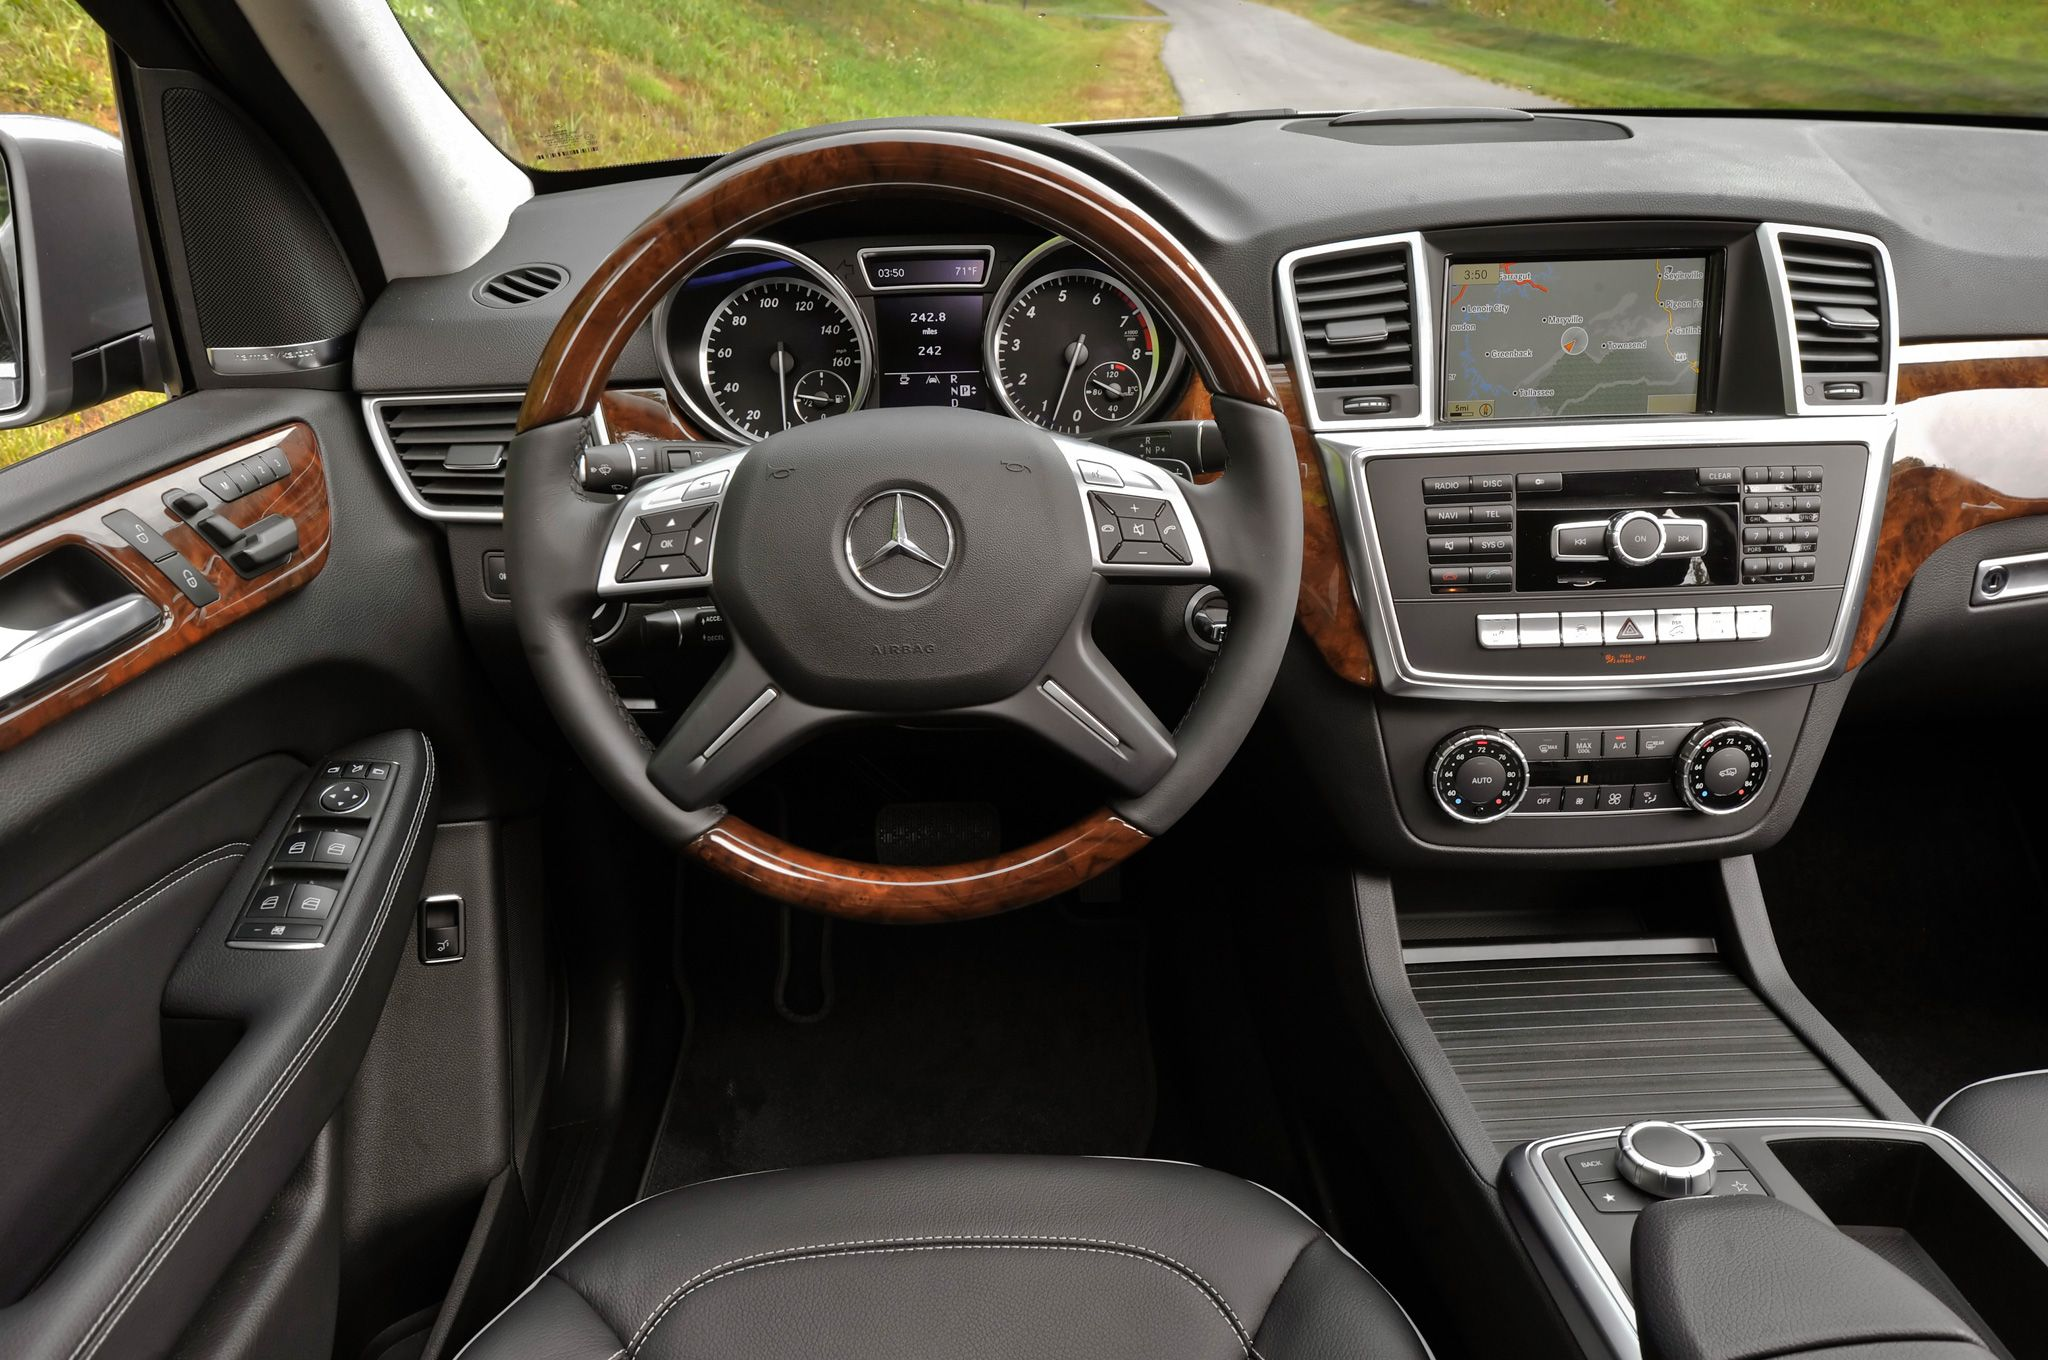 2014 Mercedes Benz M Class Awarded Iihs Top Safety Pick Mercedes Benz Ml350 Mercedes Benz Mercedes Interior